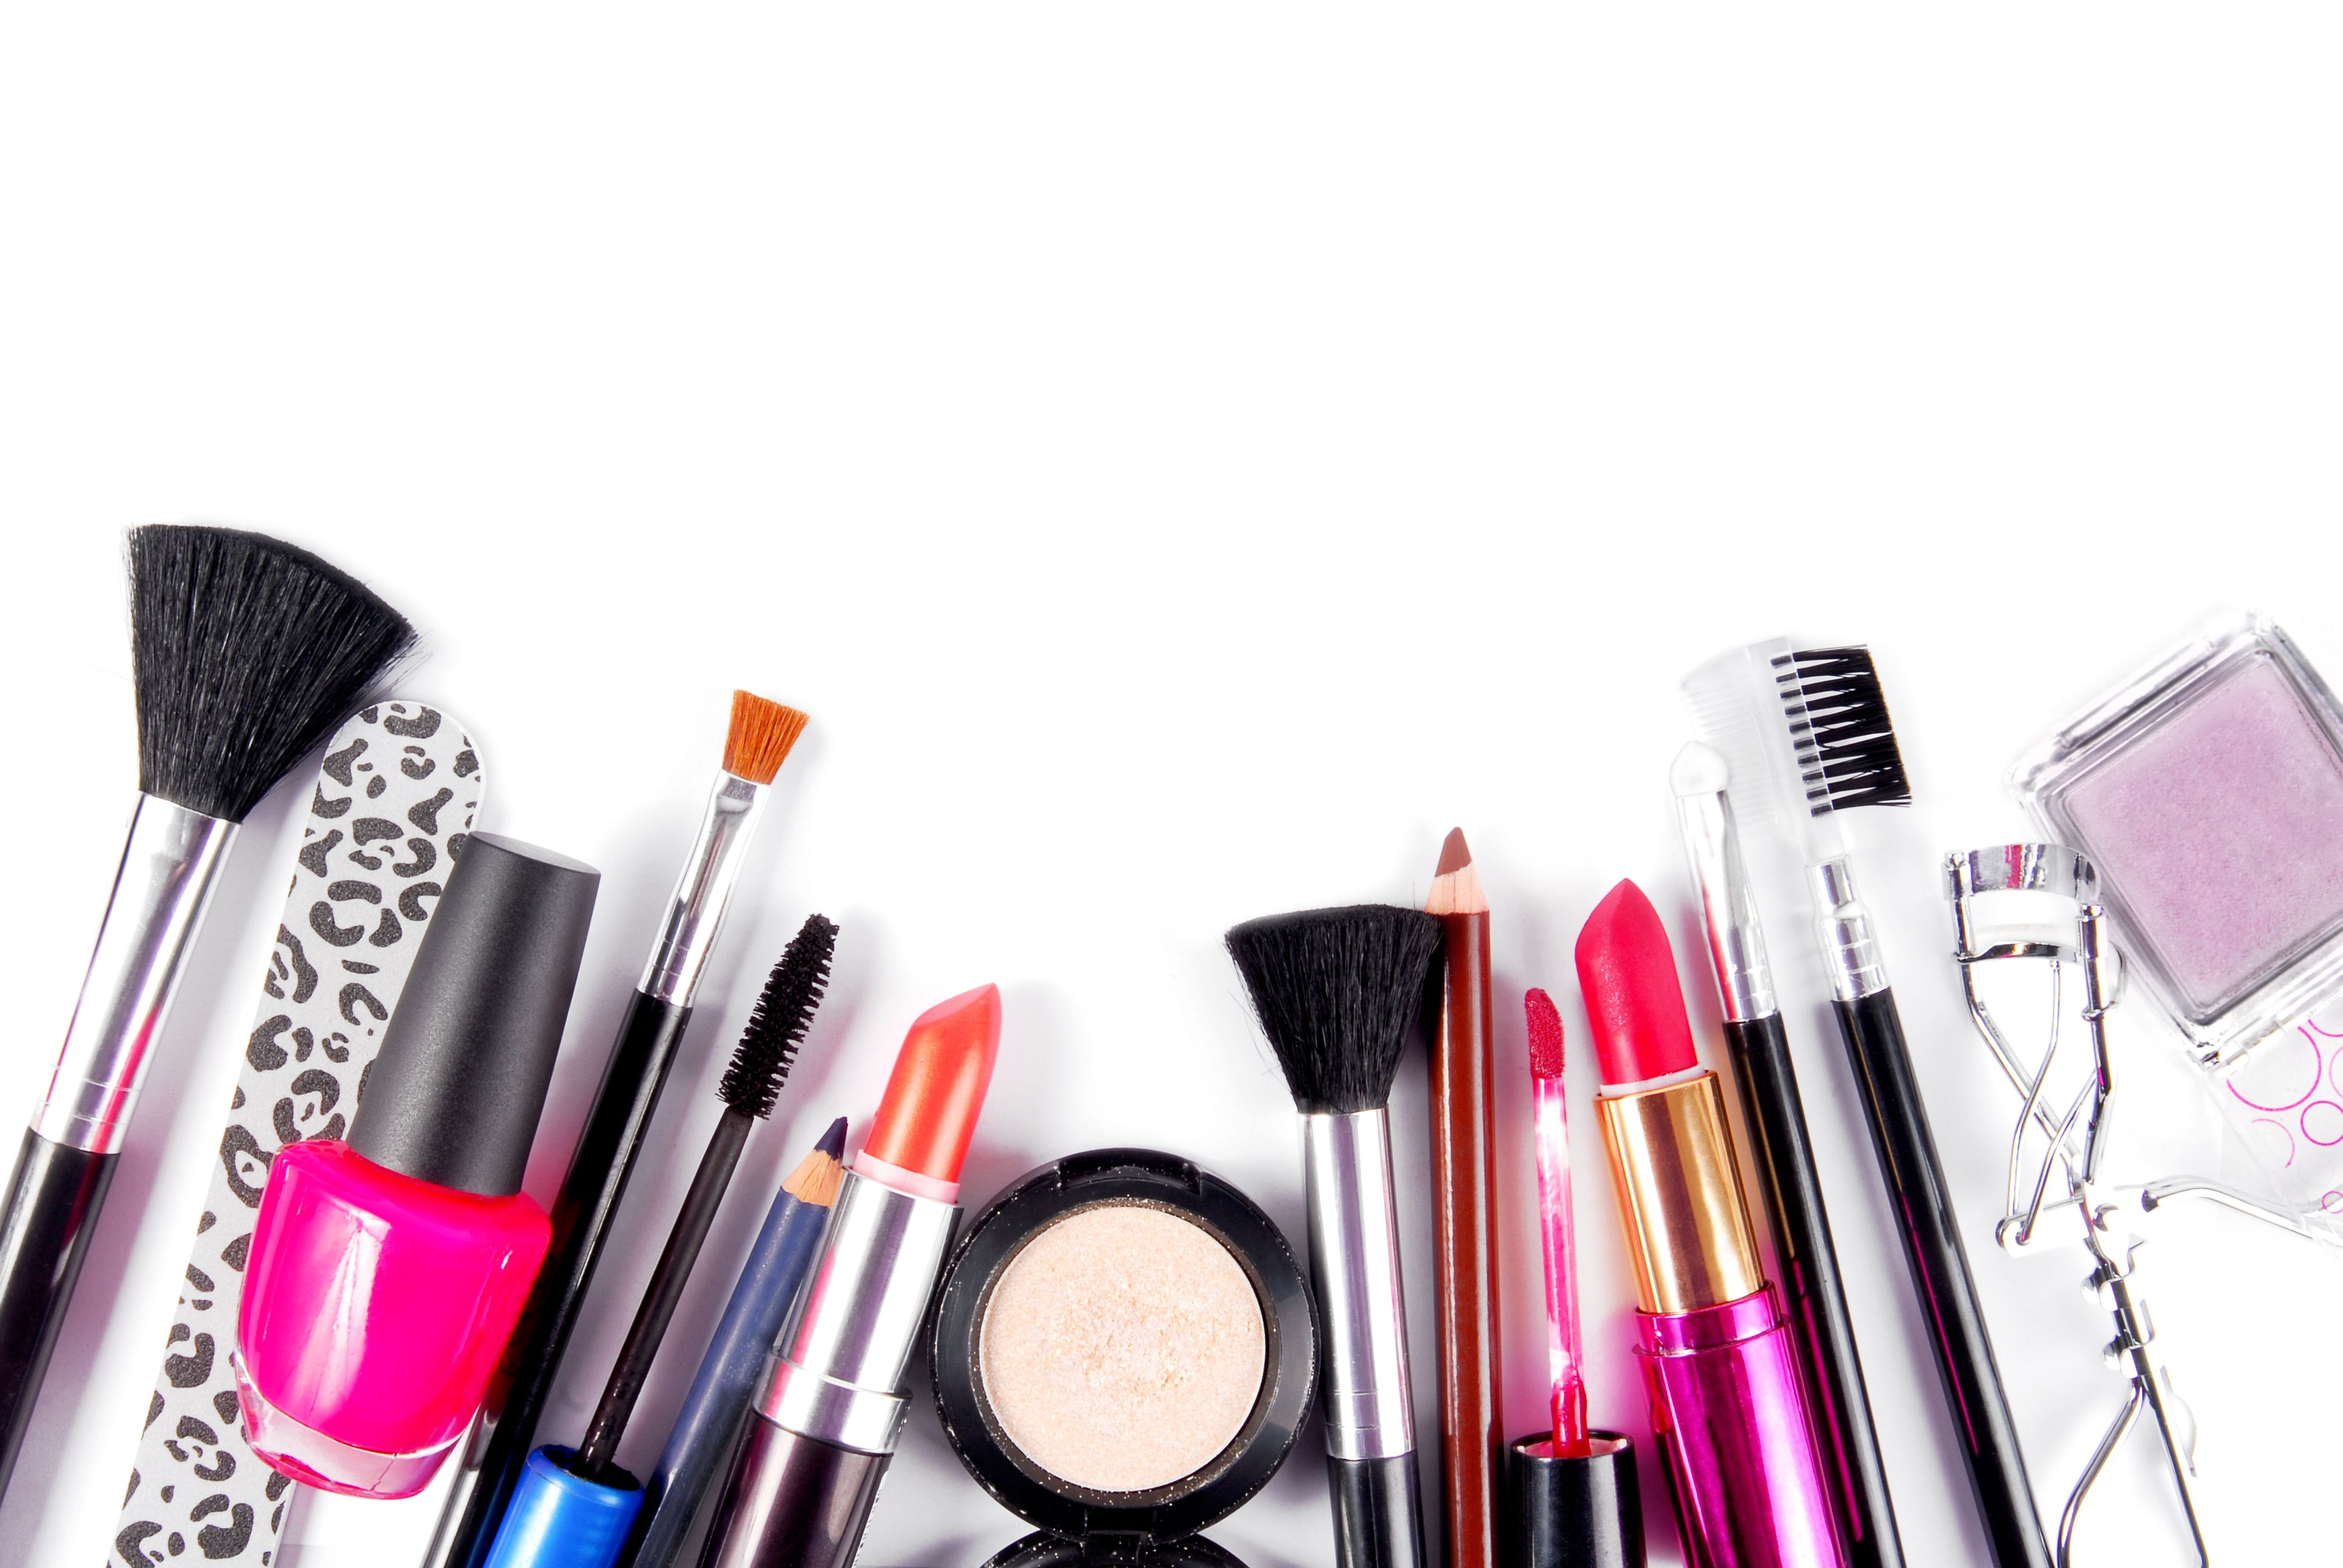 The Top 10 Makeup Products For Makeup Lovers Cosmetic Sets Makeup Wallpapers Makeup Backgrounds